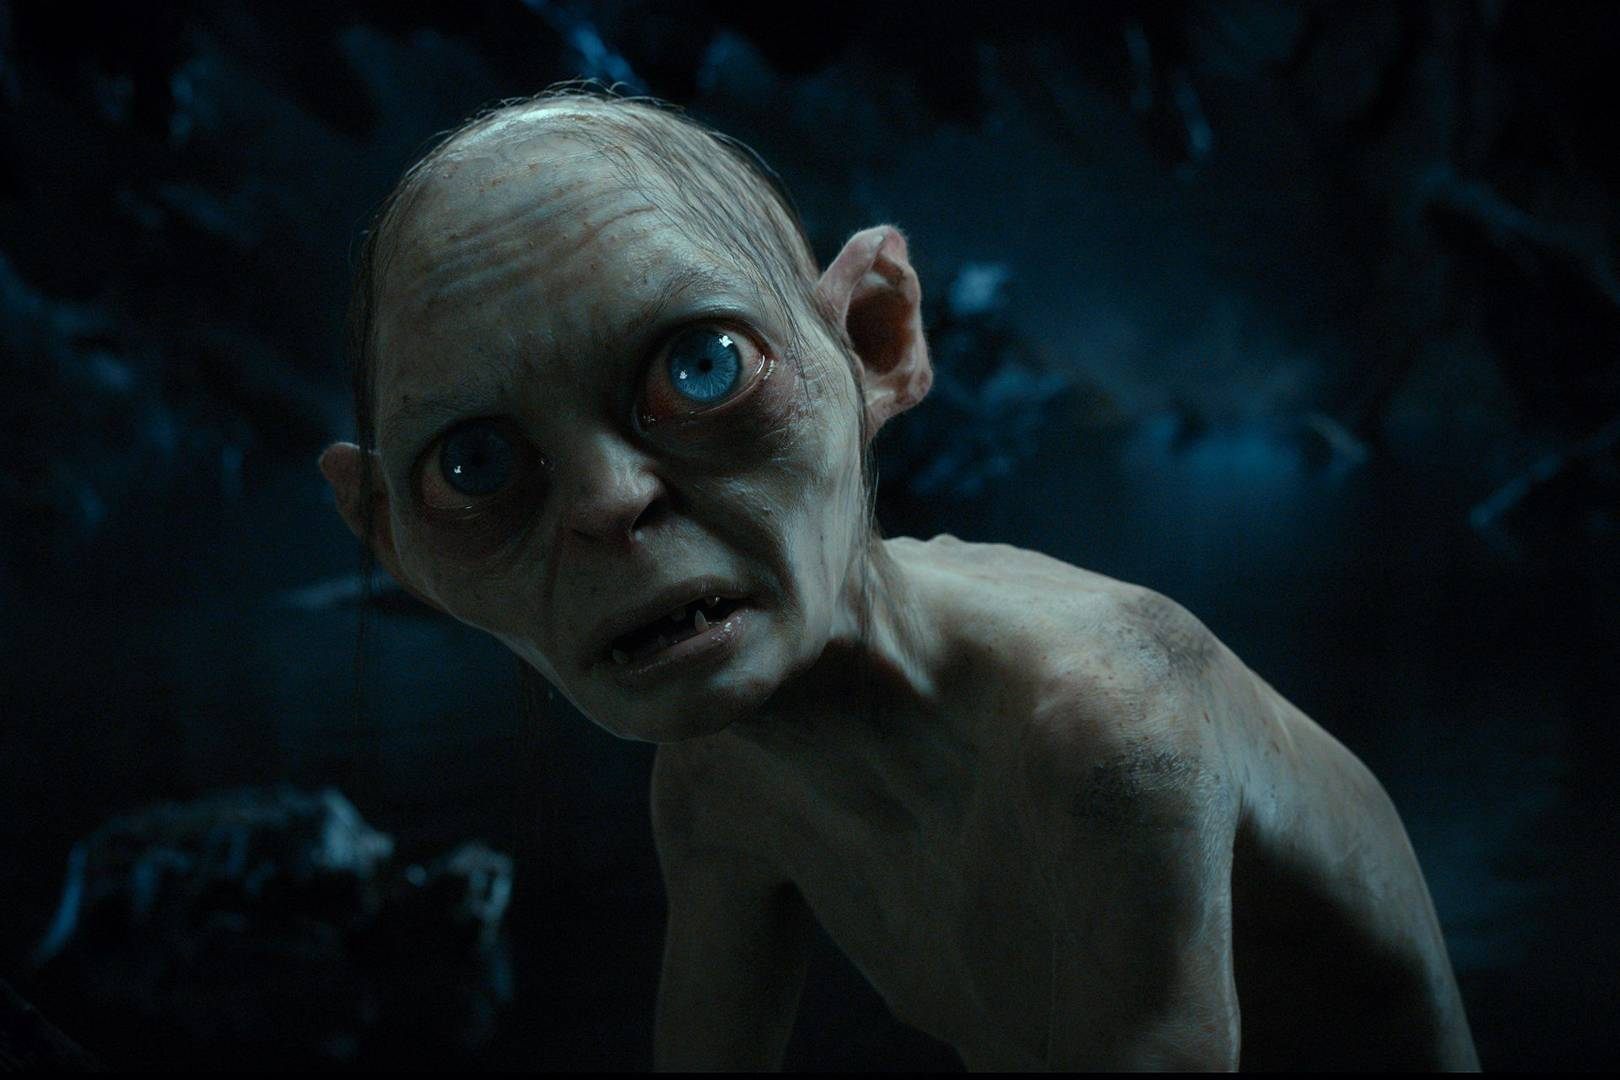 lord of the rings gollum is central figure in turkish court case